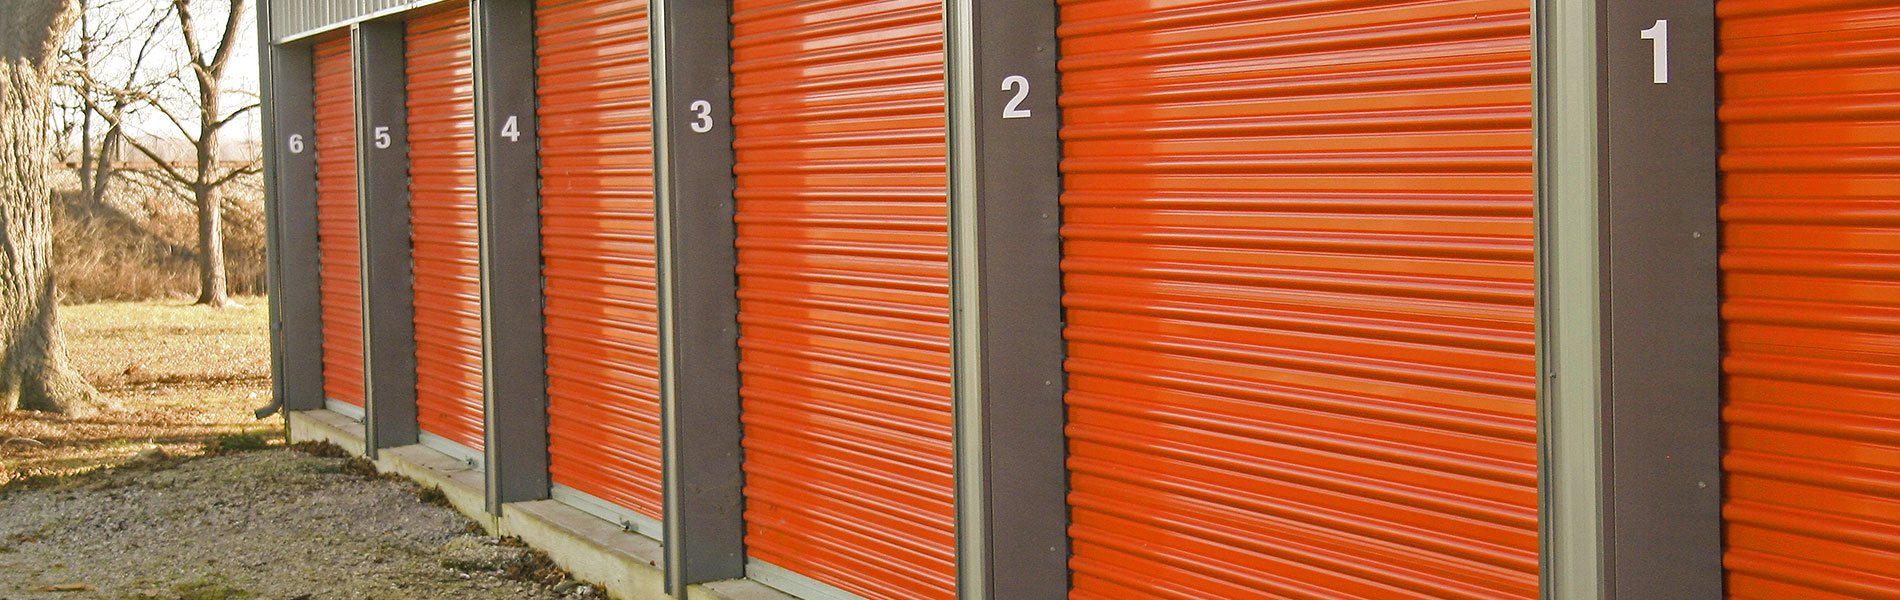 Galaxy Garage Door Service, Houston, TX 713-893-3869